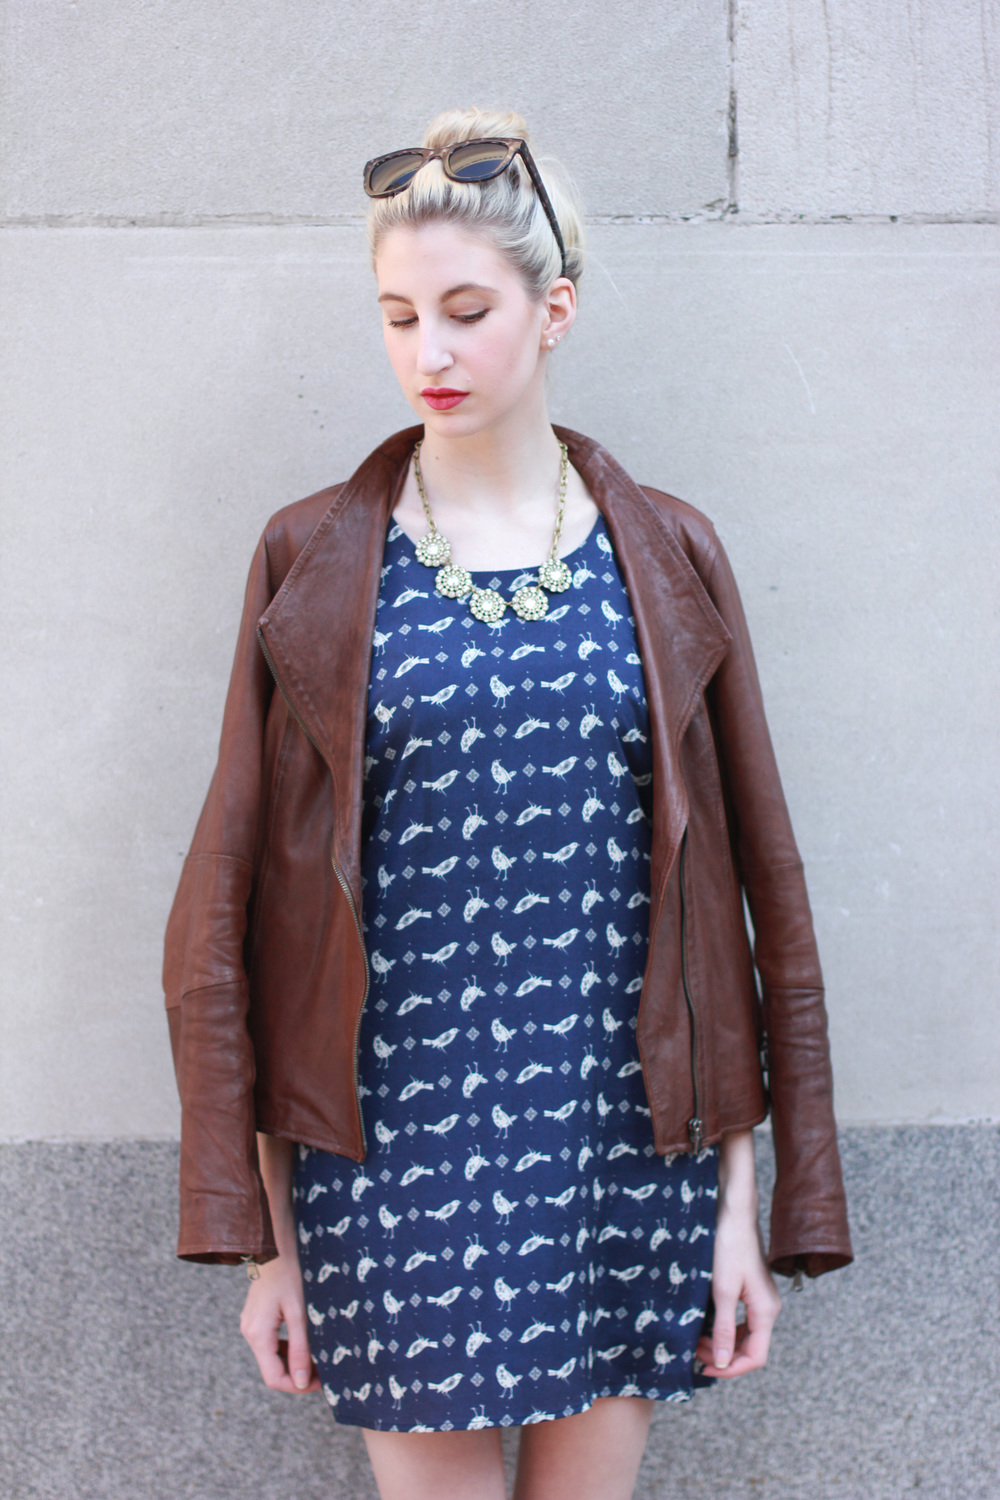 Bird Dress, leather jacket, J.Crew crystal necklace, Clinique Punch pop lipstick, LOFT brown and black d'orsay flats